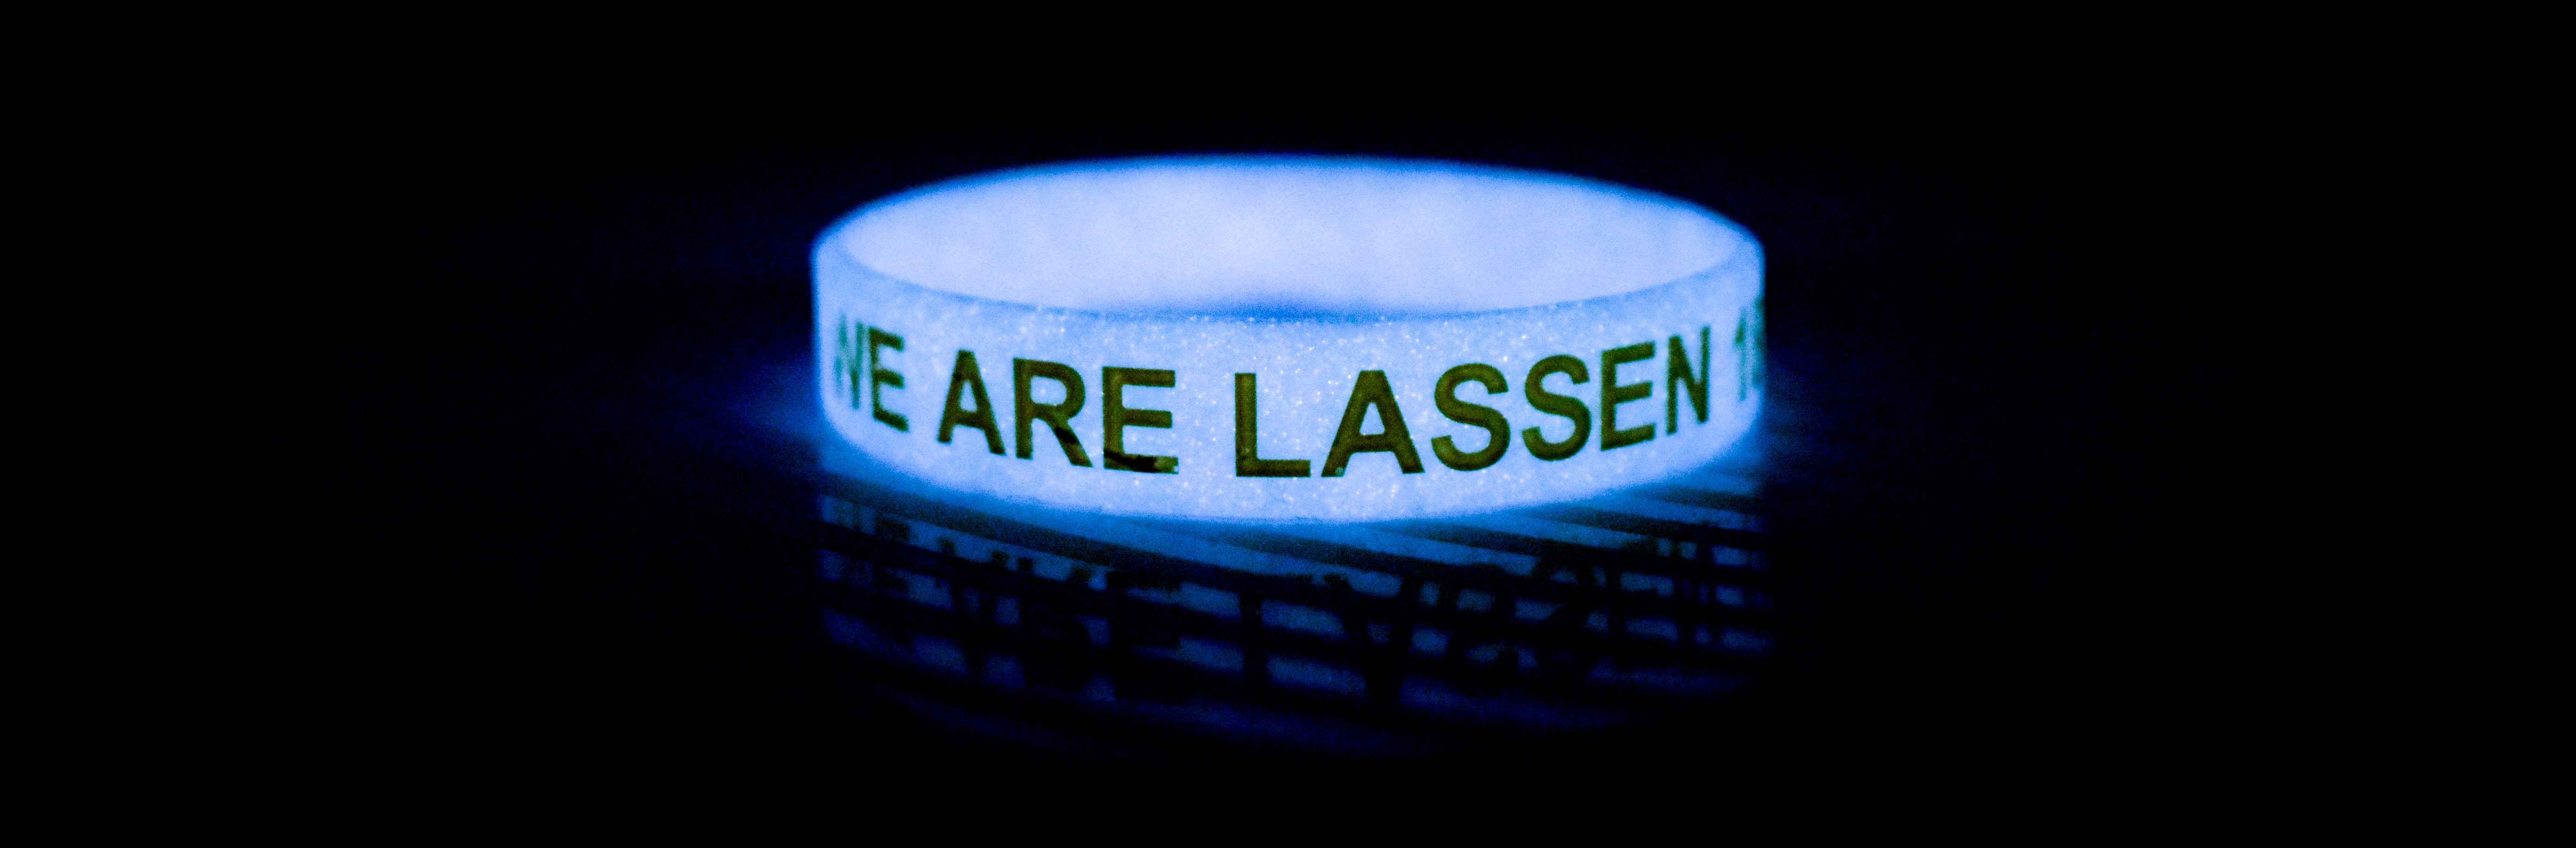 We are Lassen glowing bracelet